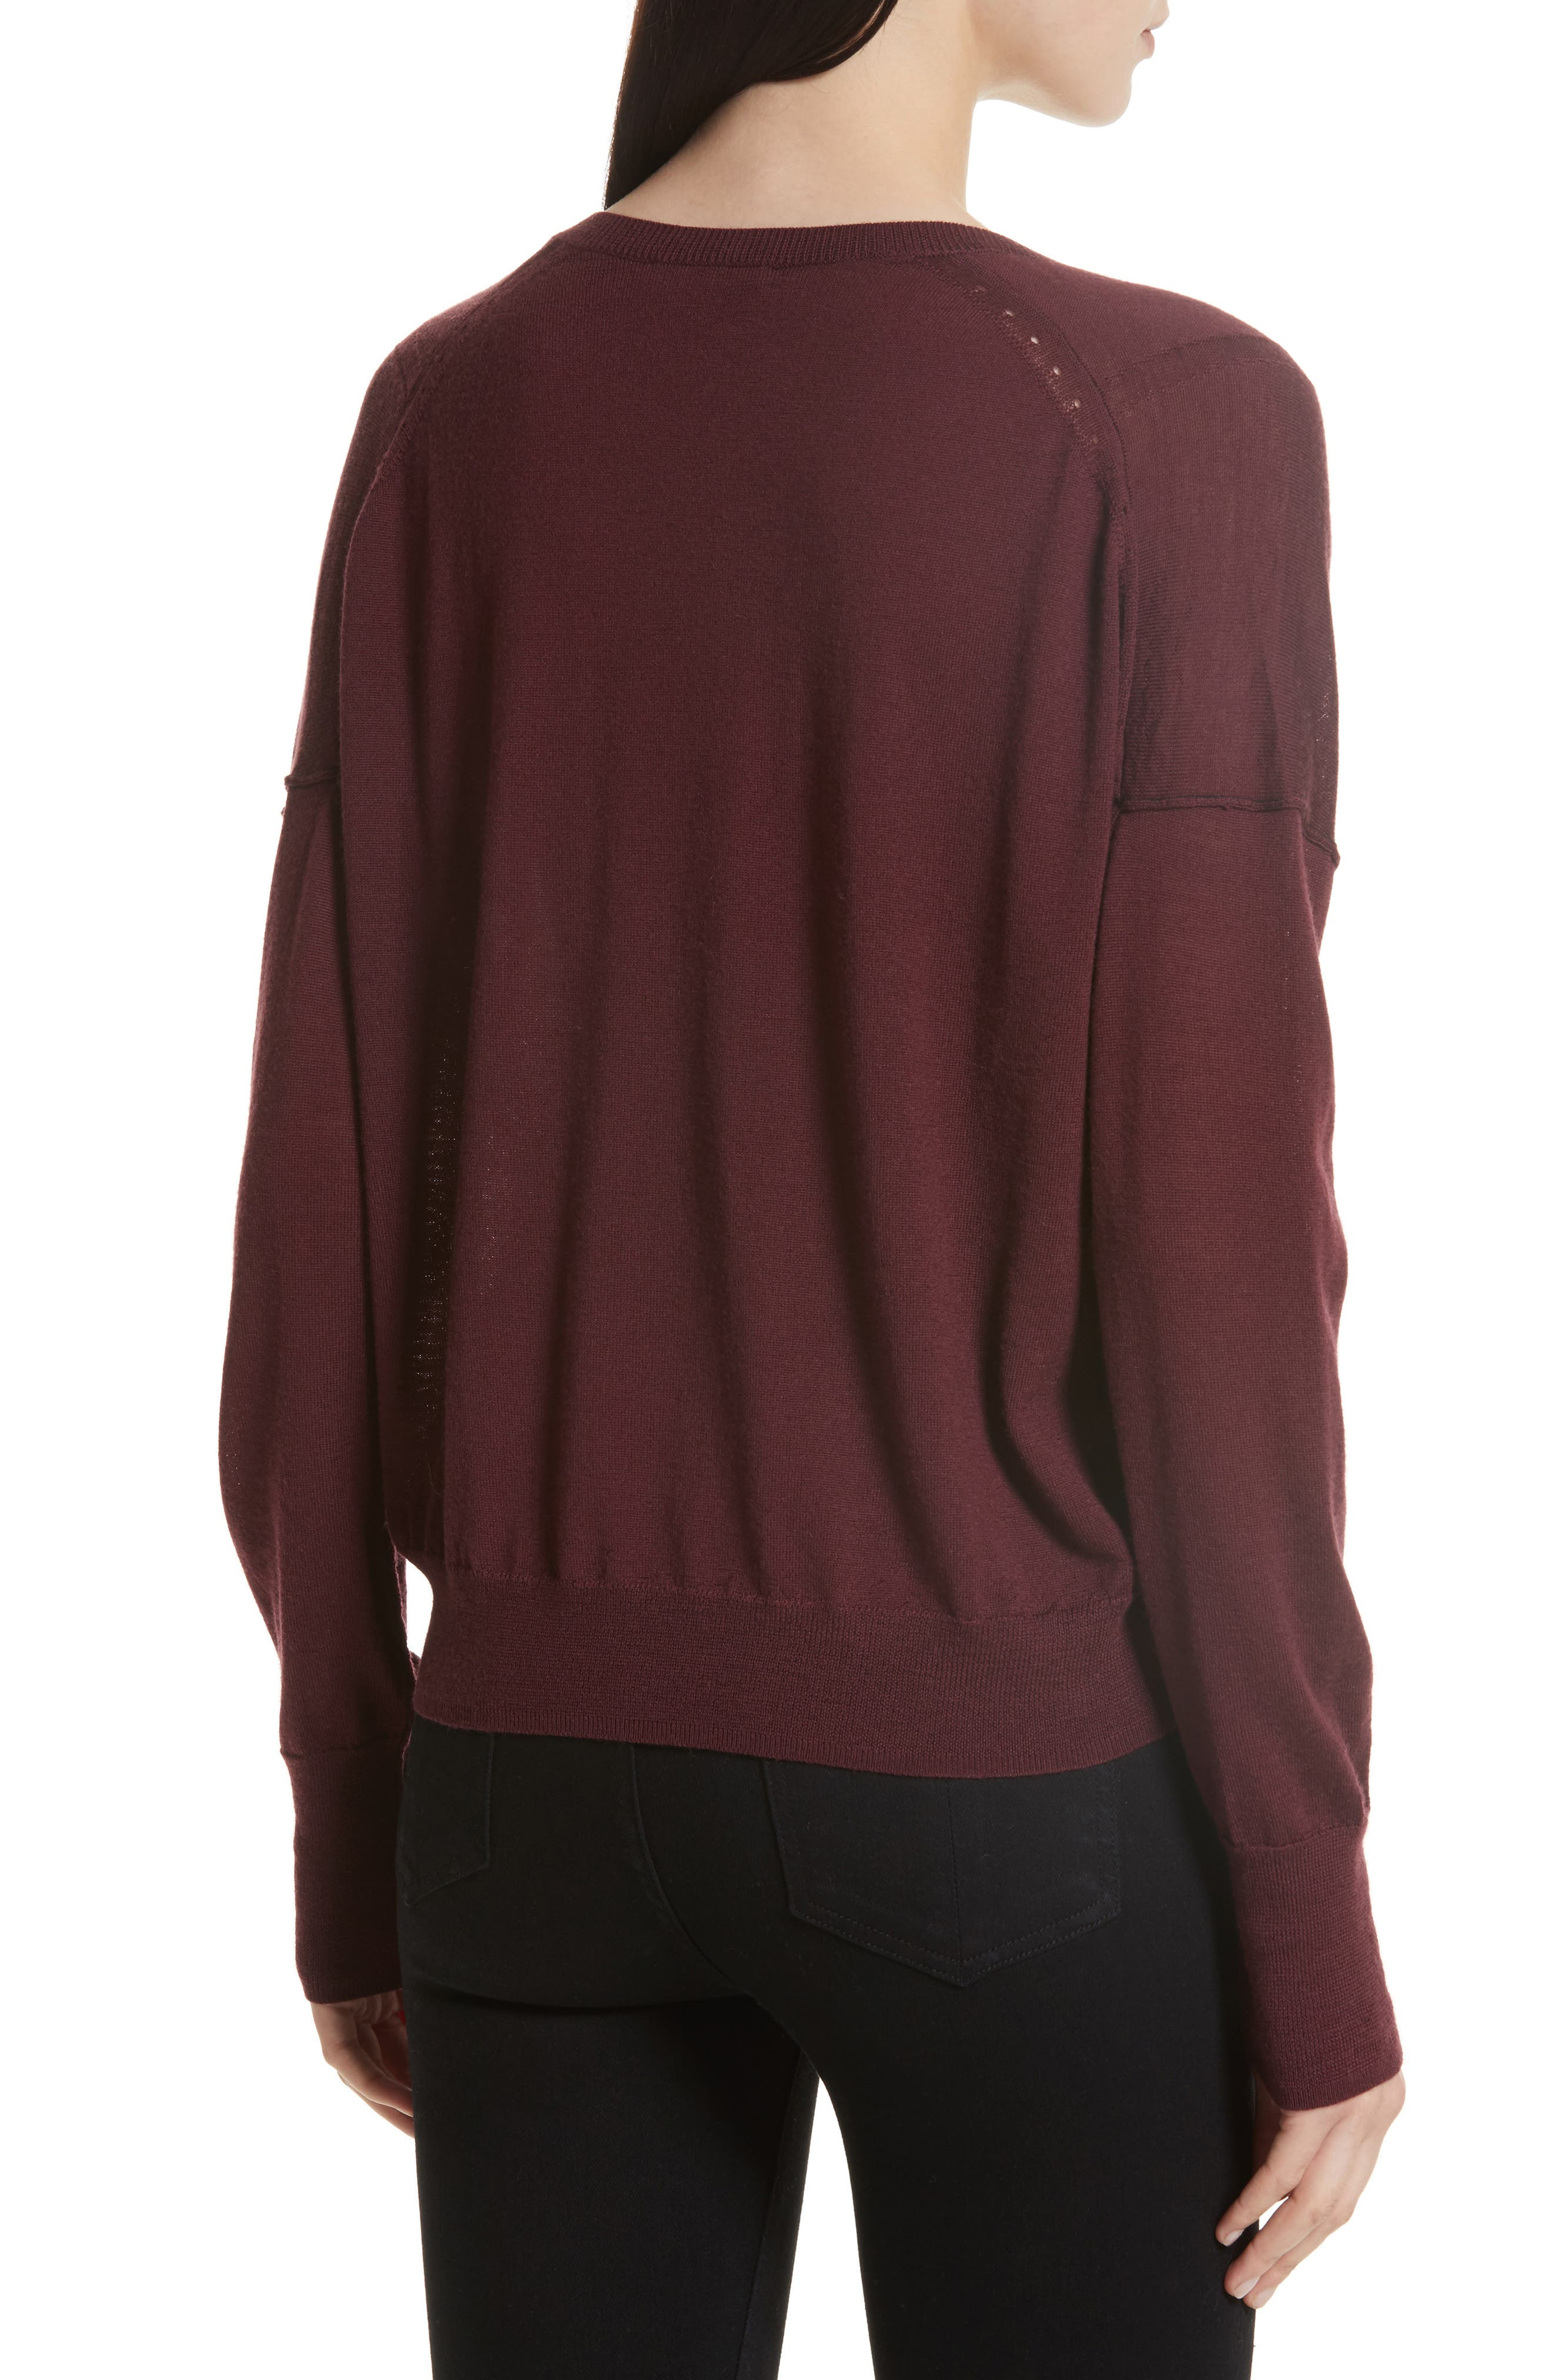 Bevan Merino Wool Sweater,                             Alternate thumbnail 2, color,                             618